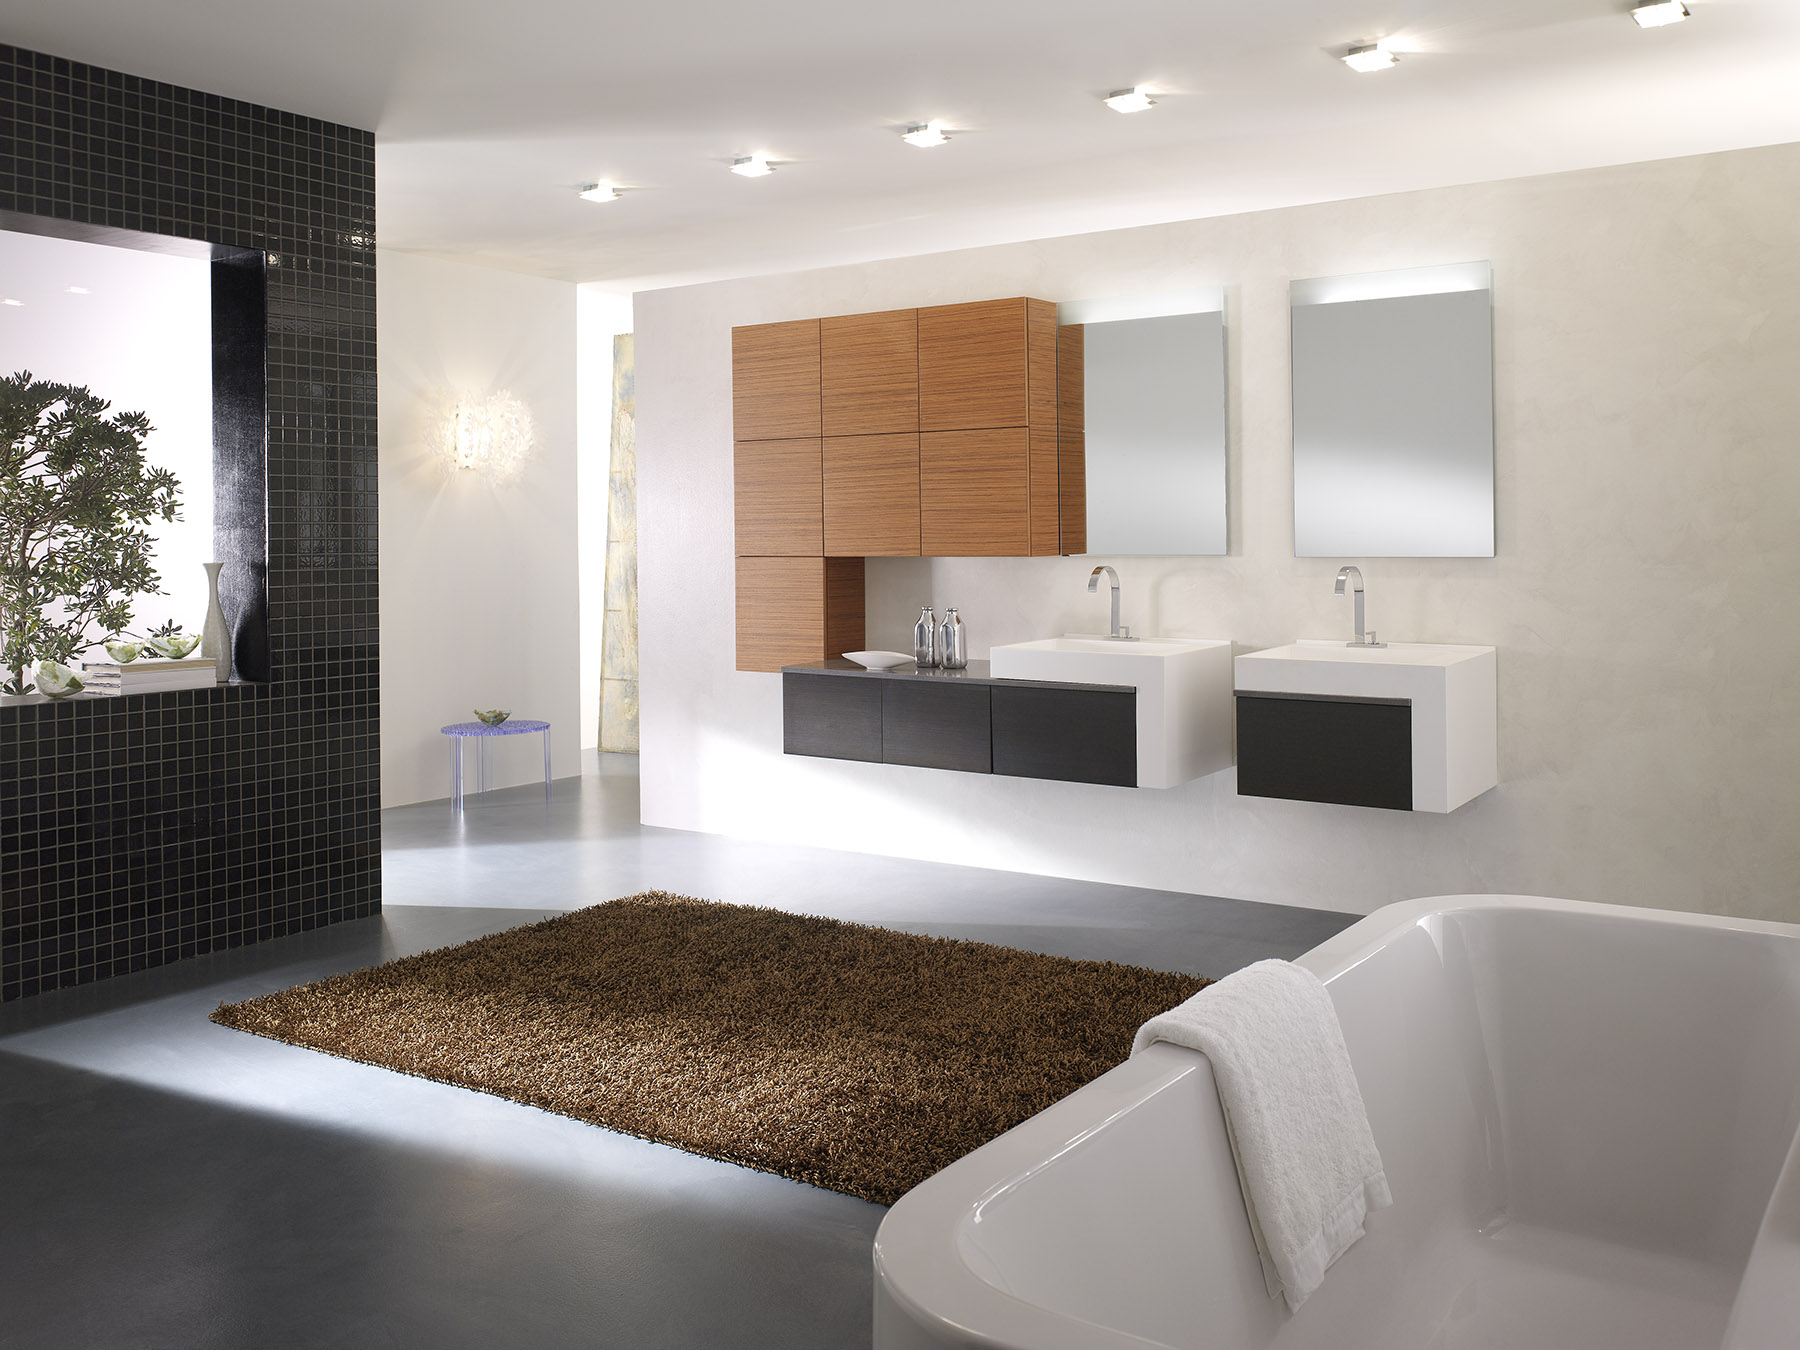 d corer sa salle de bain entre confort praticit et esth tique. Black Bedroom Furniture Sets. Home Design Ideas